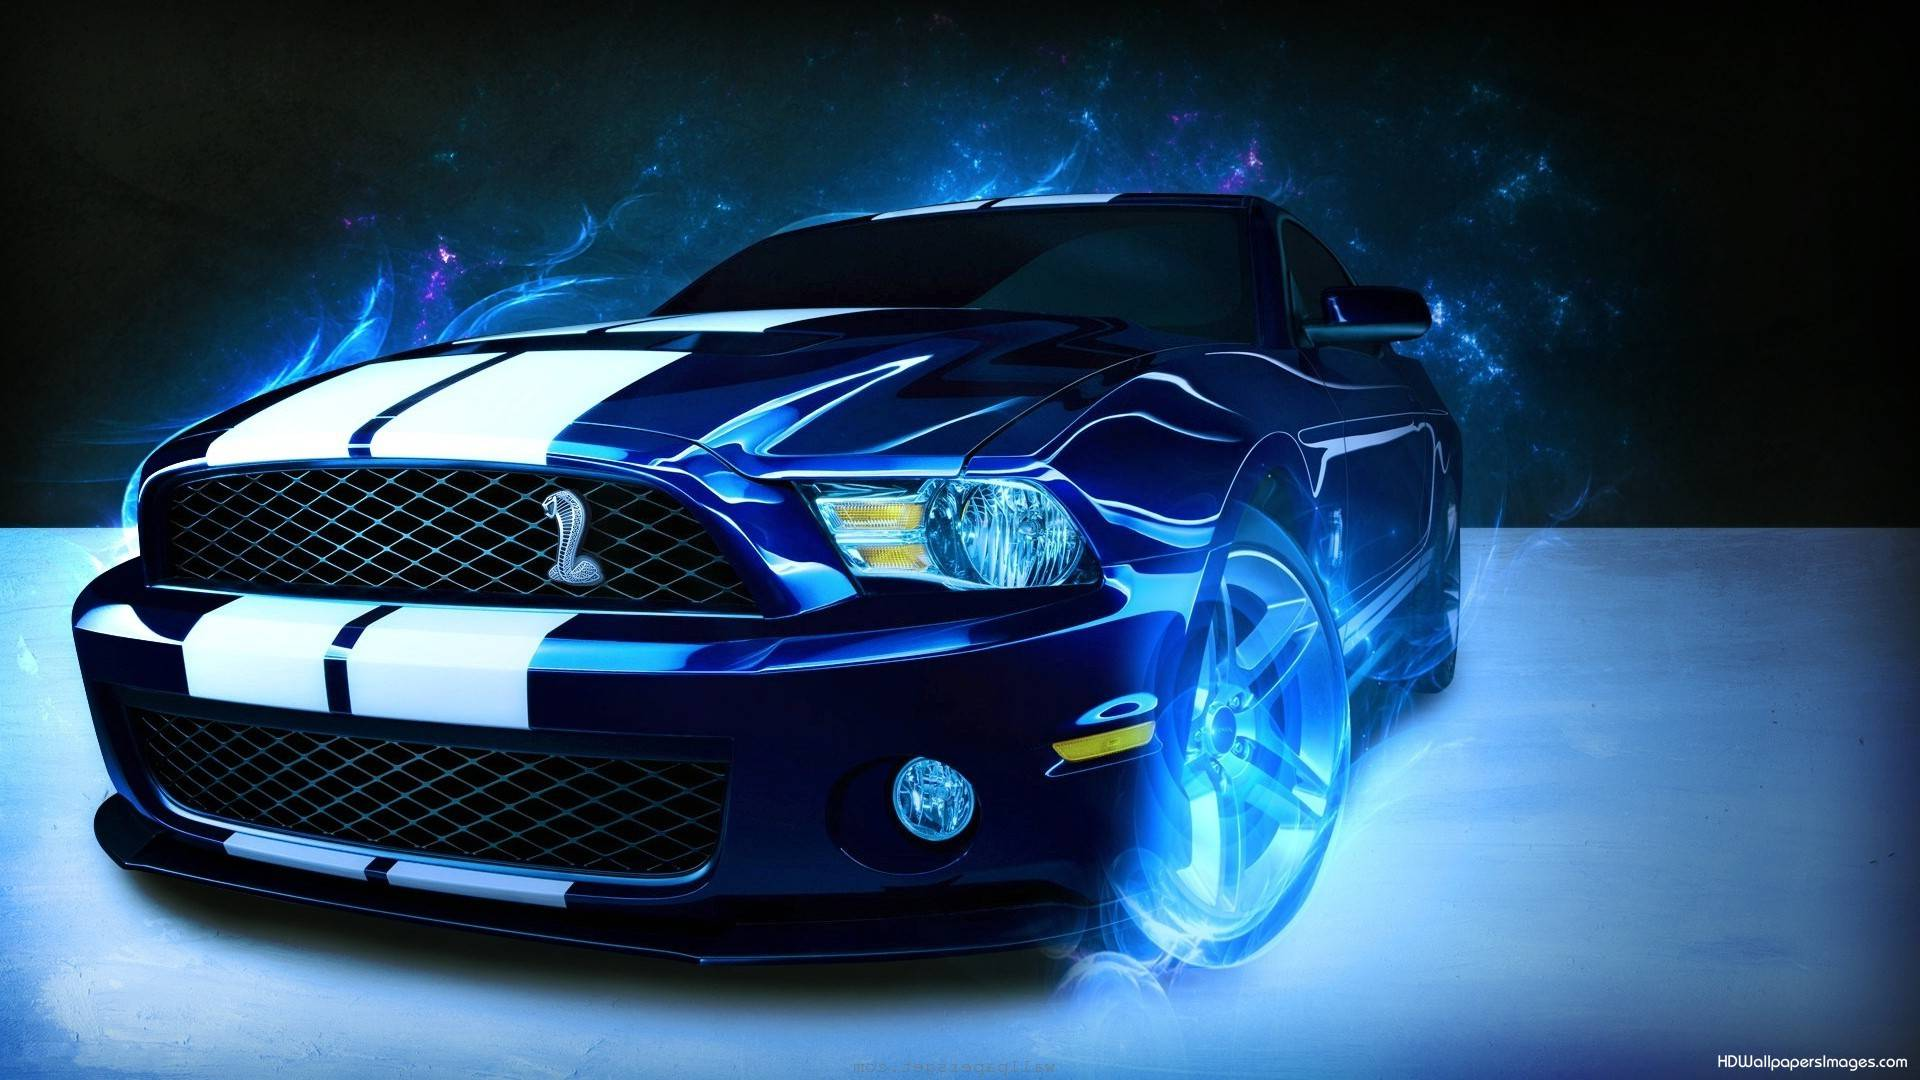 Image for Ford Mustang Gt Wallpaper Ford Mustang Wallpaper Best 1920x1080